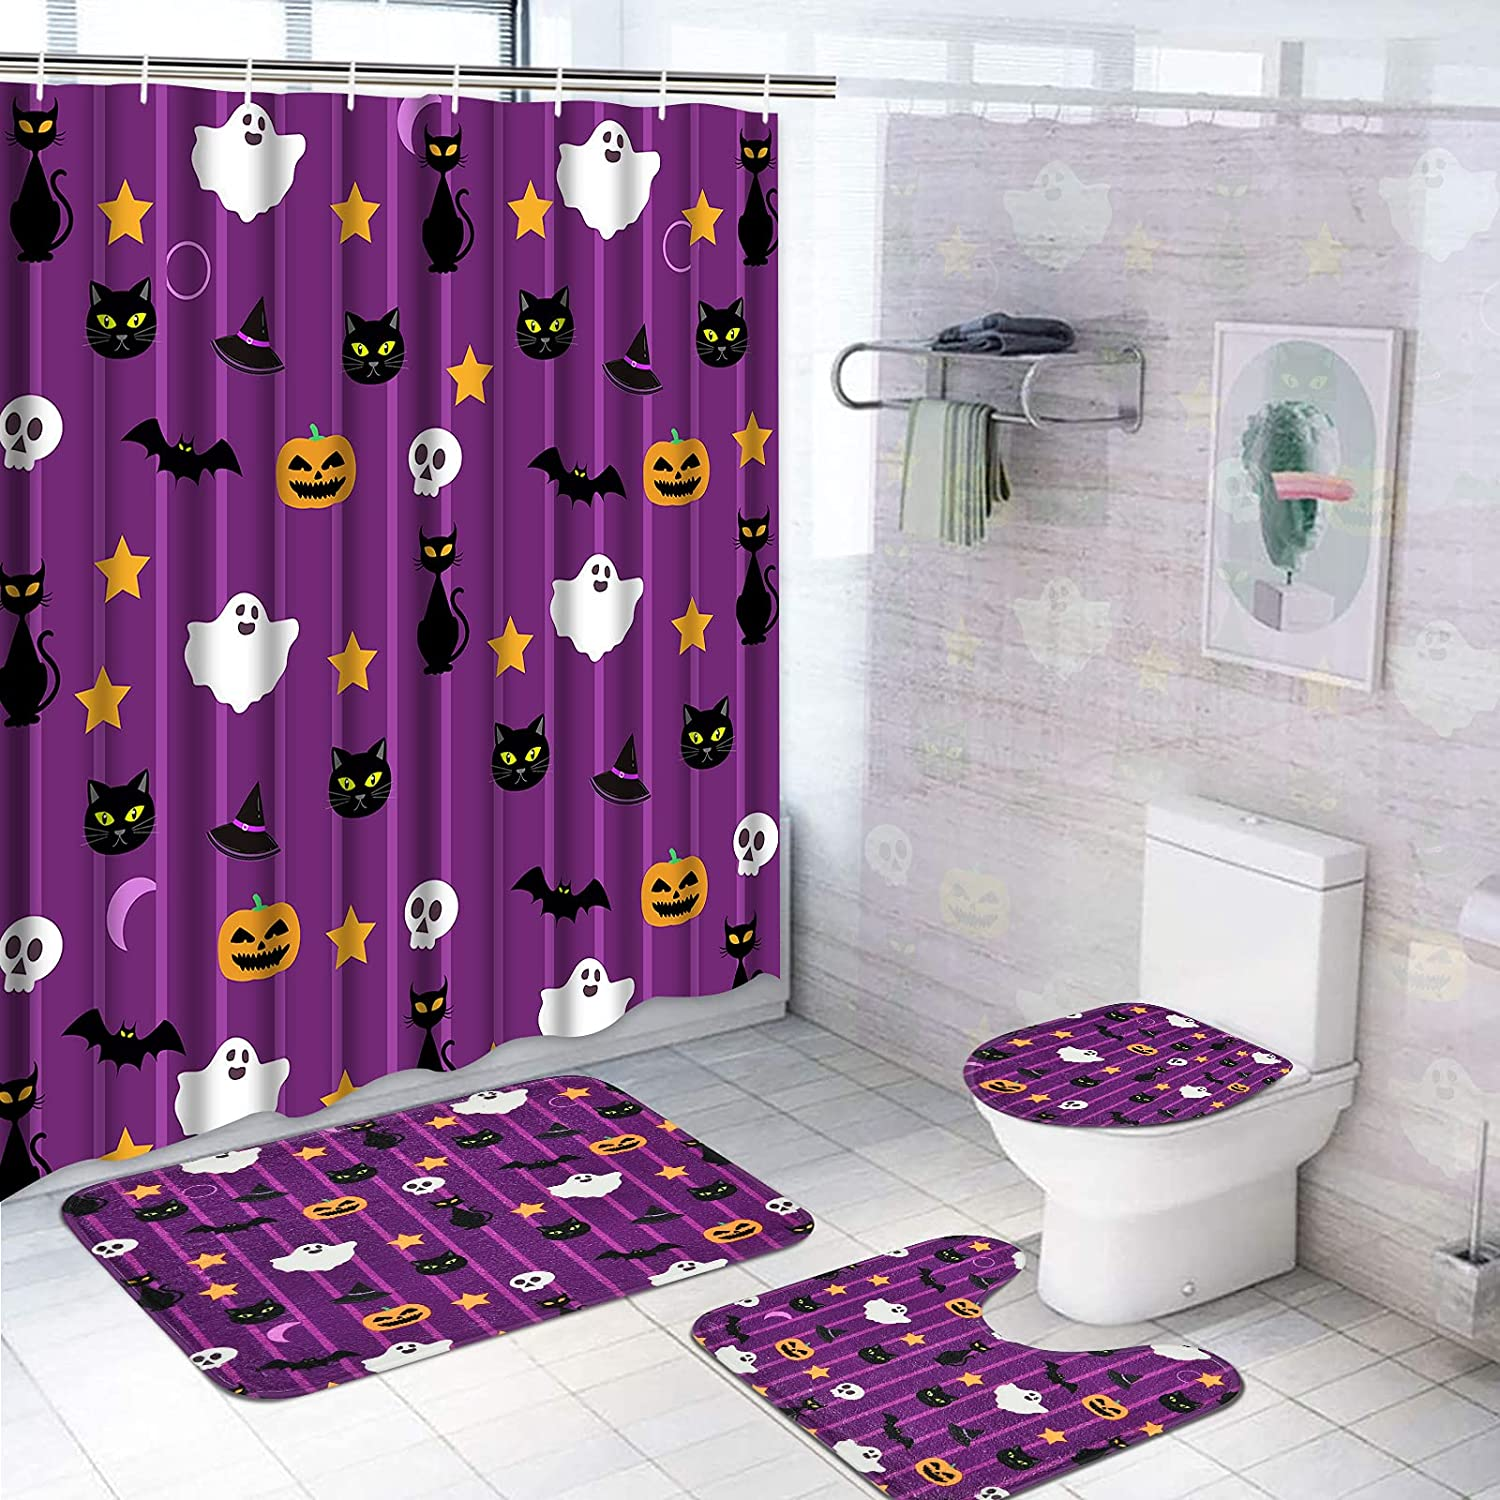 Pknoclan 4 Pcs Halloween Over item handling Shower Non-Slip Curtain with Rug SEAL limited product Sets